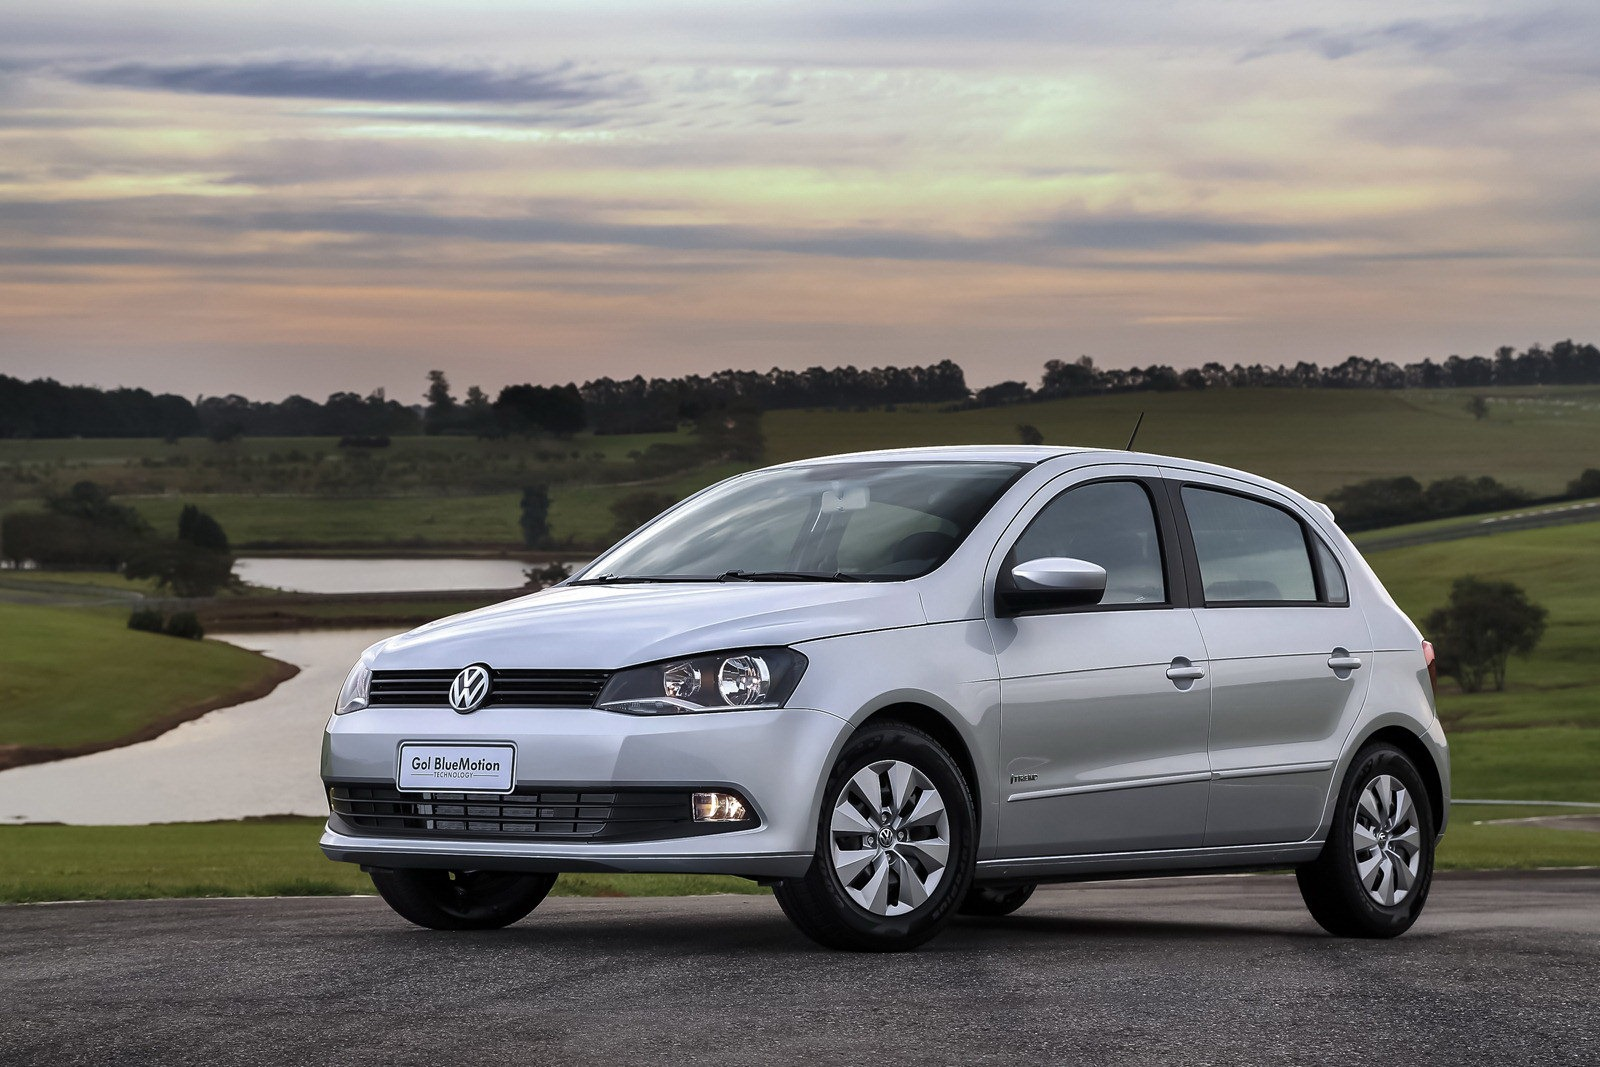 2013 Volkswagen Gol Hatchback 1 2013 Volkswagen Gol and Voyage to Be Modified for Better Performance